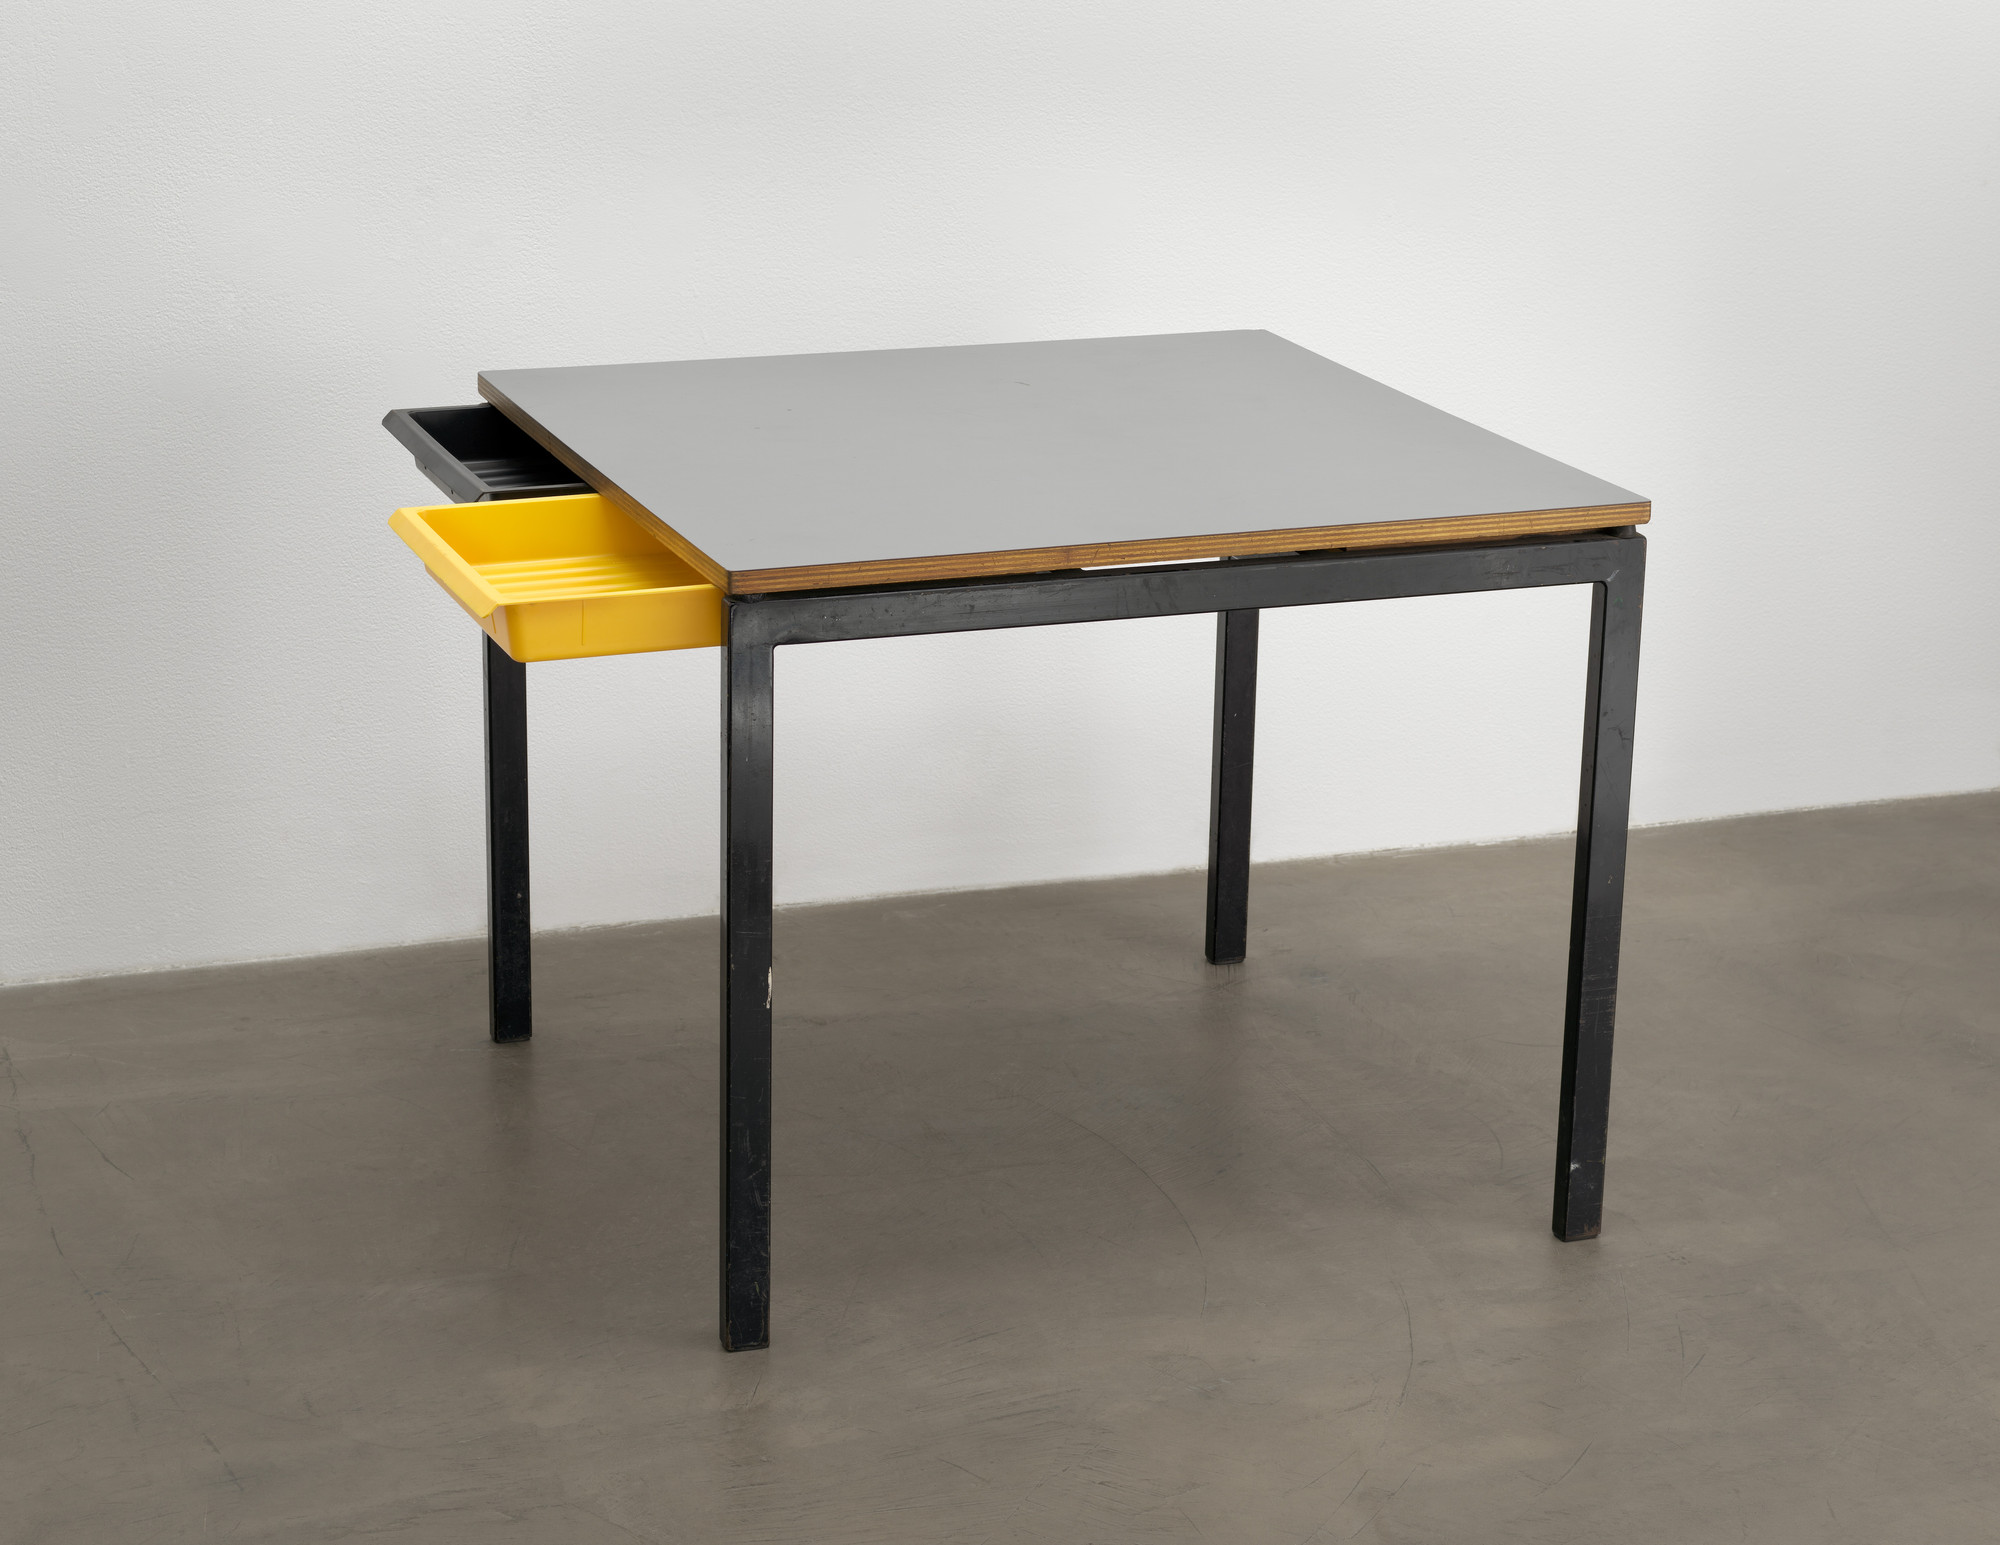 Charlotte Perriand, Le Corbusier (Charles-Édouard Jeanneret). Table from the Maison du Brésil. 1959